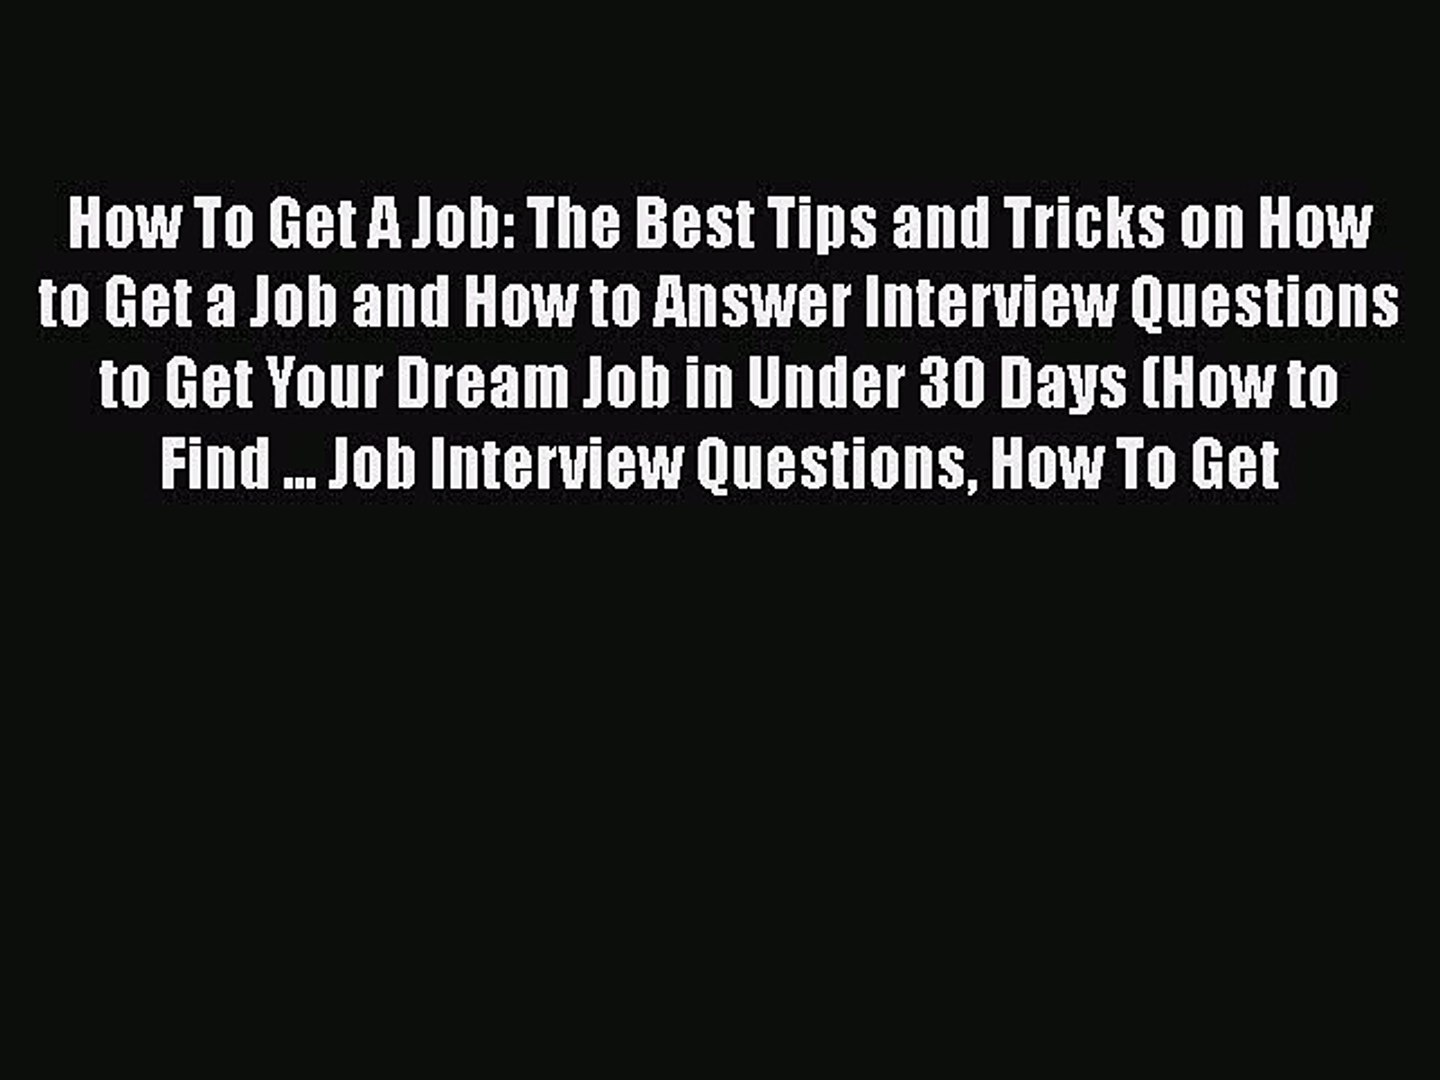 Read How To Get A Job: The Best Tips and Tricks on How to Get a Job and How to Answer Interview#